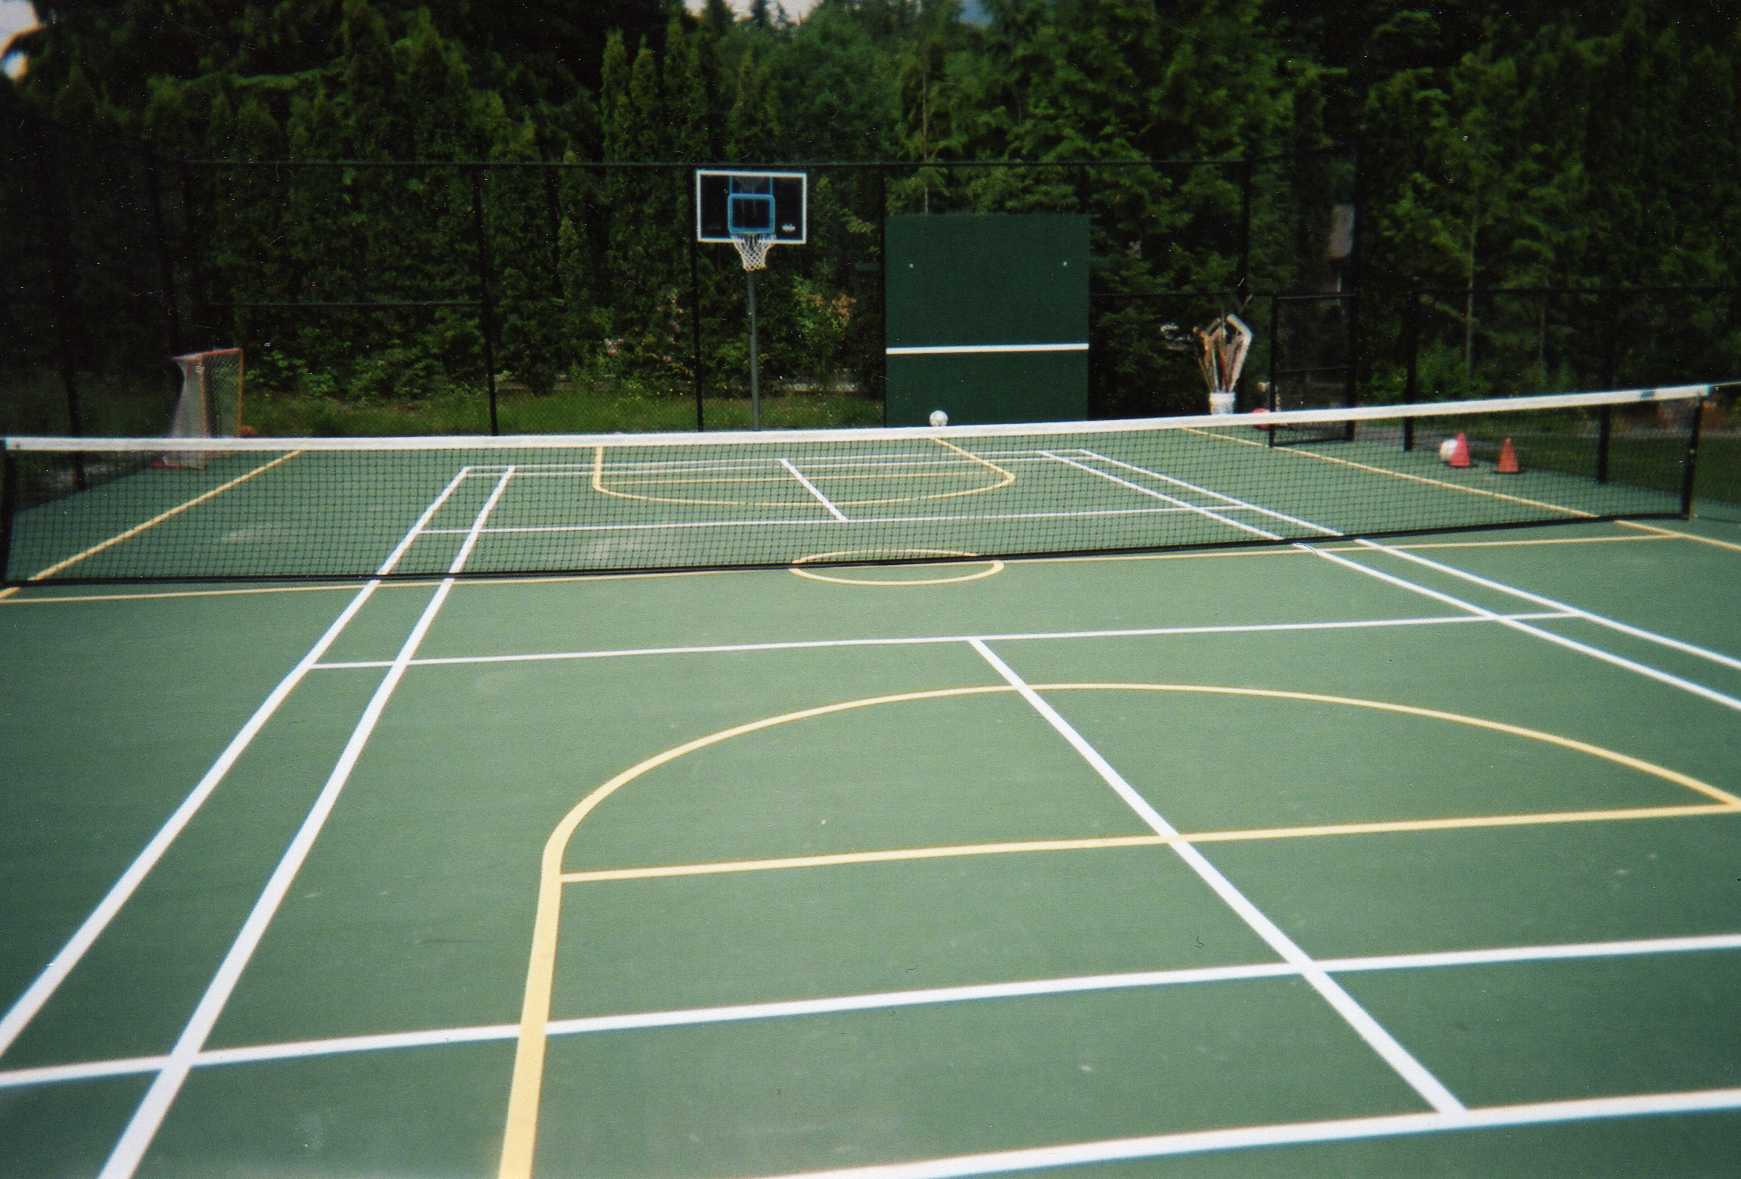 Pacific ace tennis multisport courts surfaces equipment for Sport courts